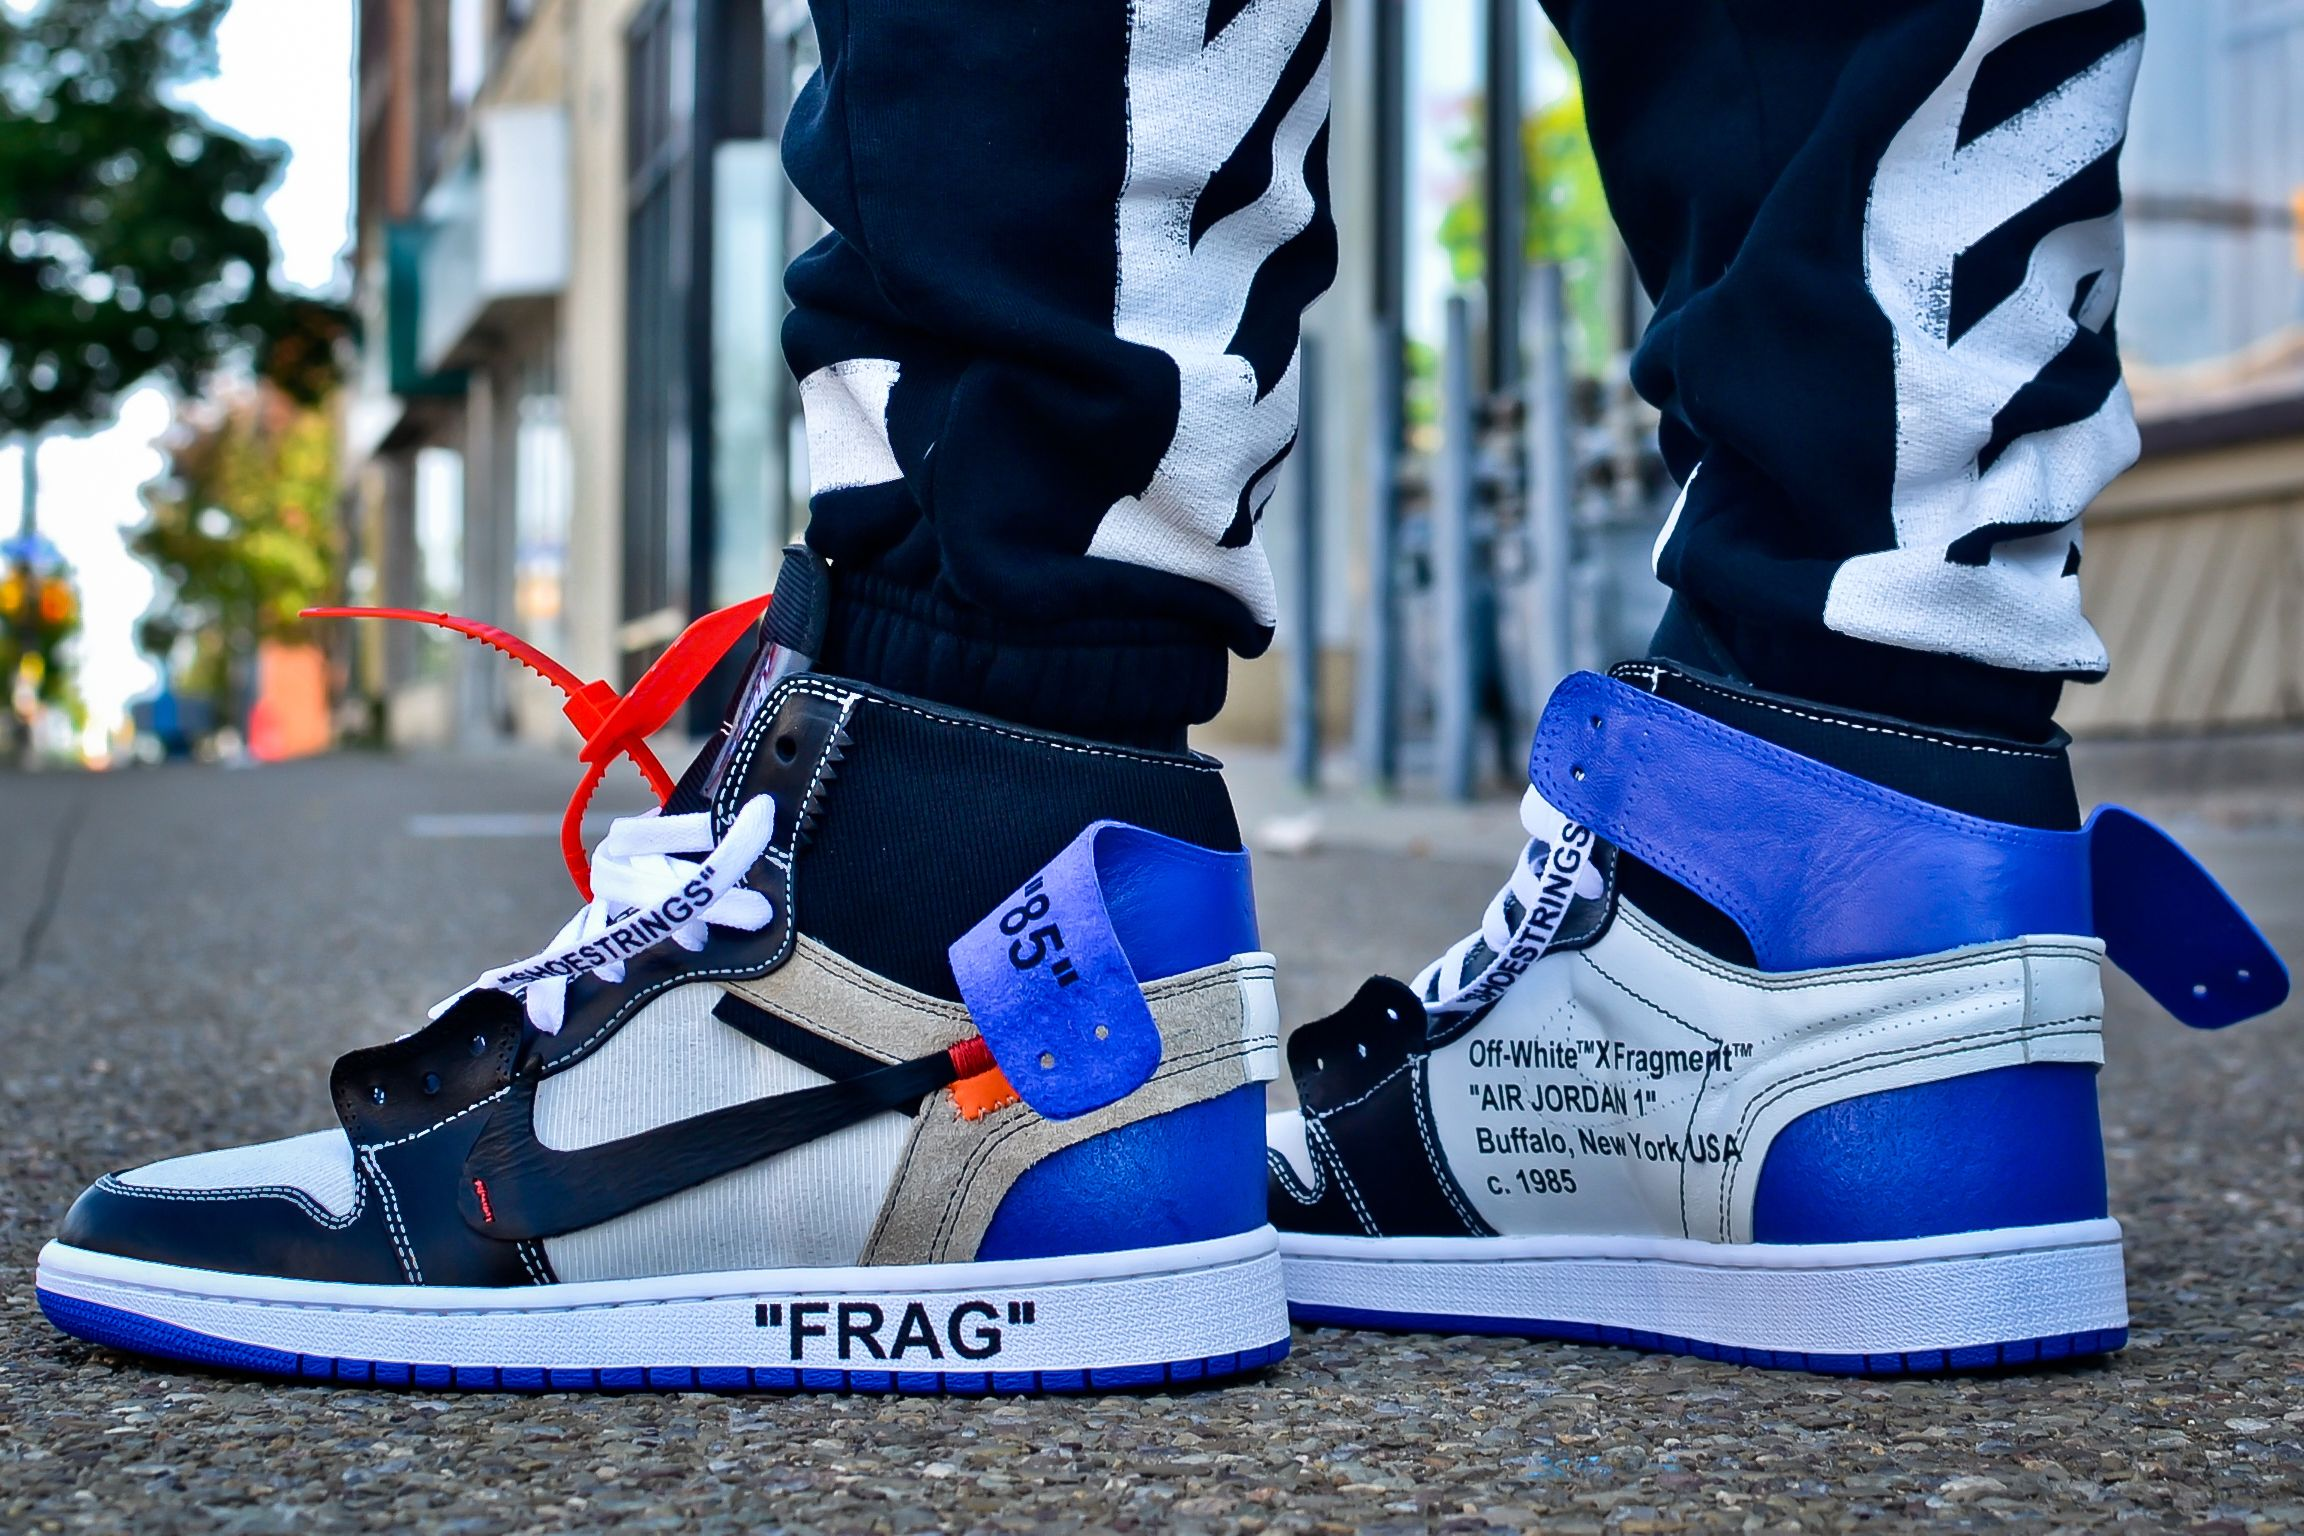 944a387cb59c Customizer Imagines a Virgil Abloh x fragment design x Nike Air Jordan 1